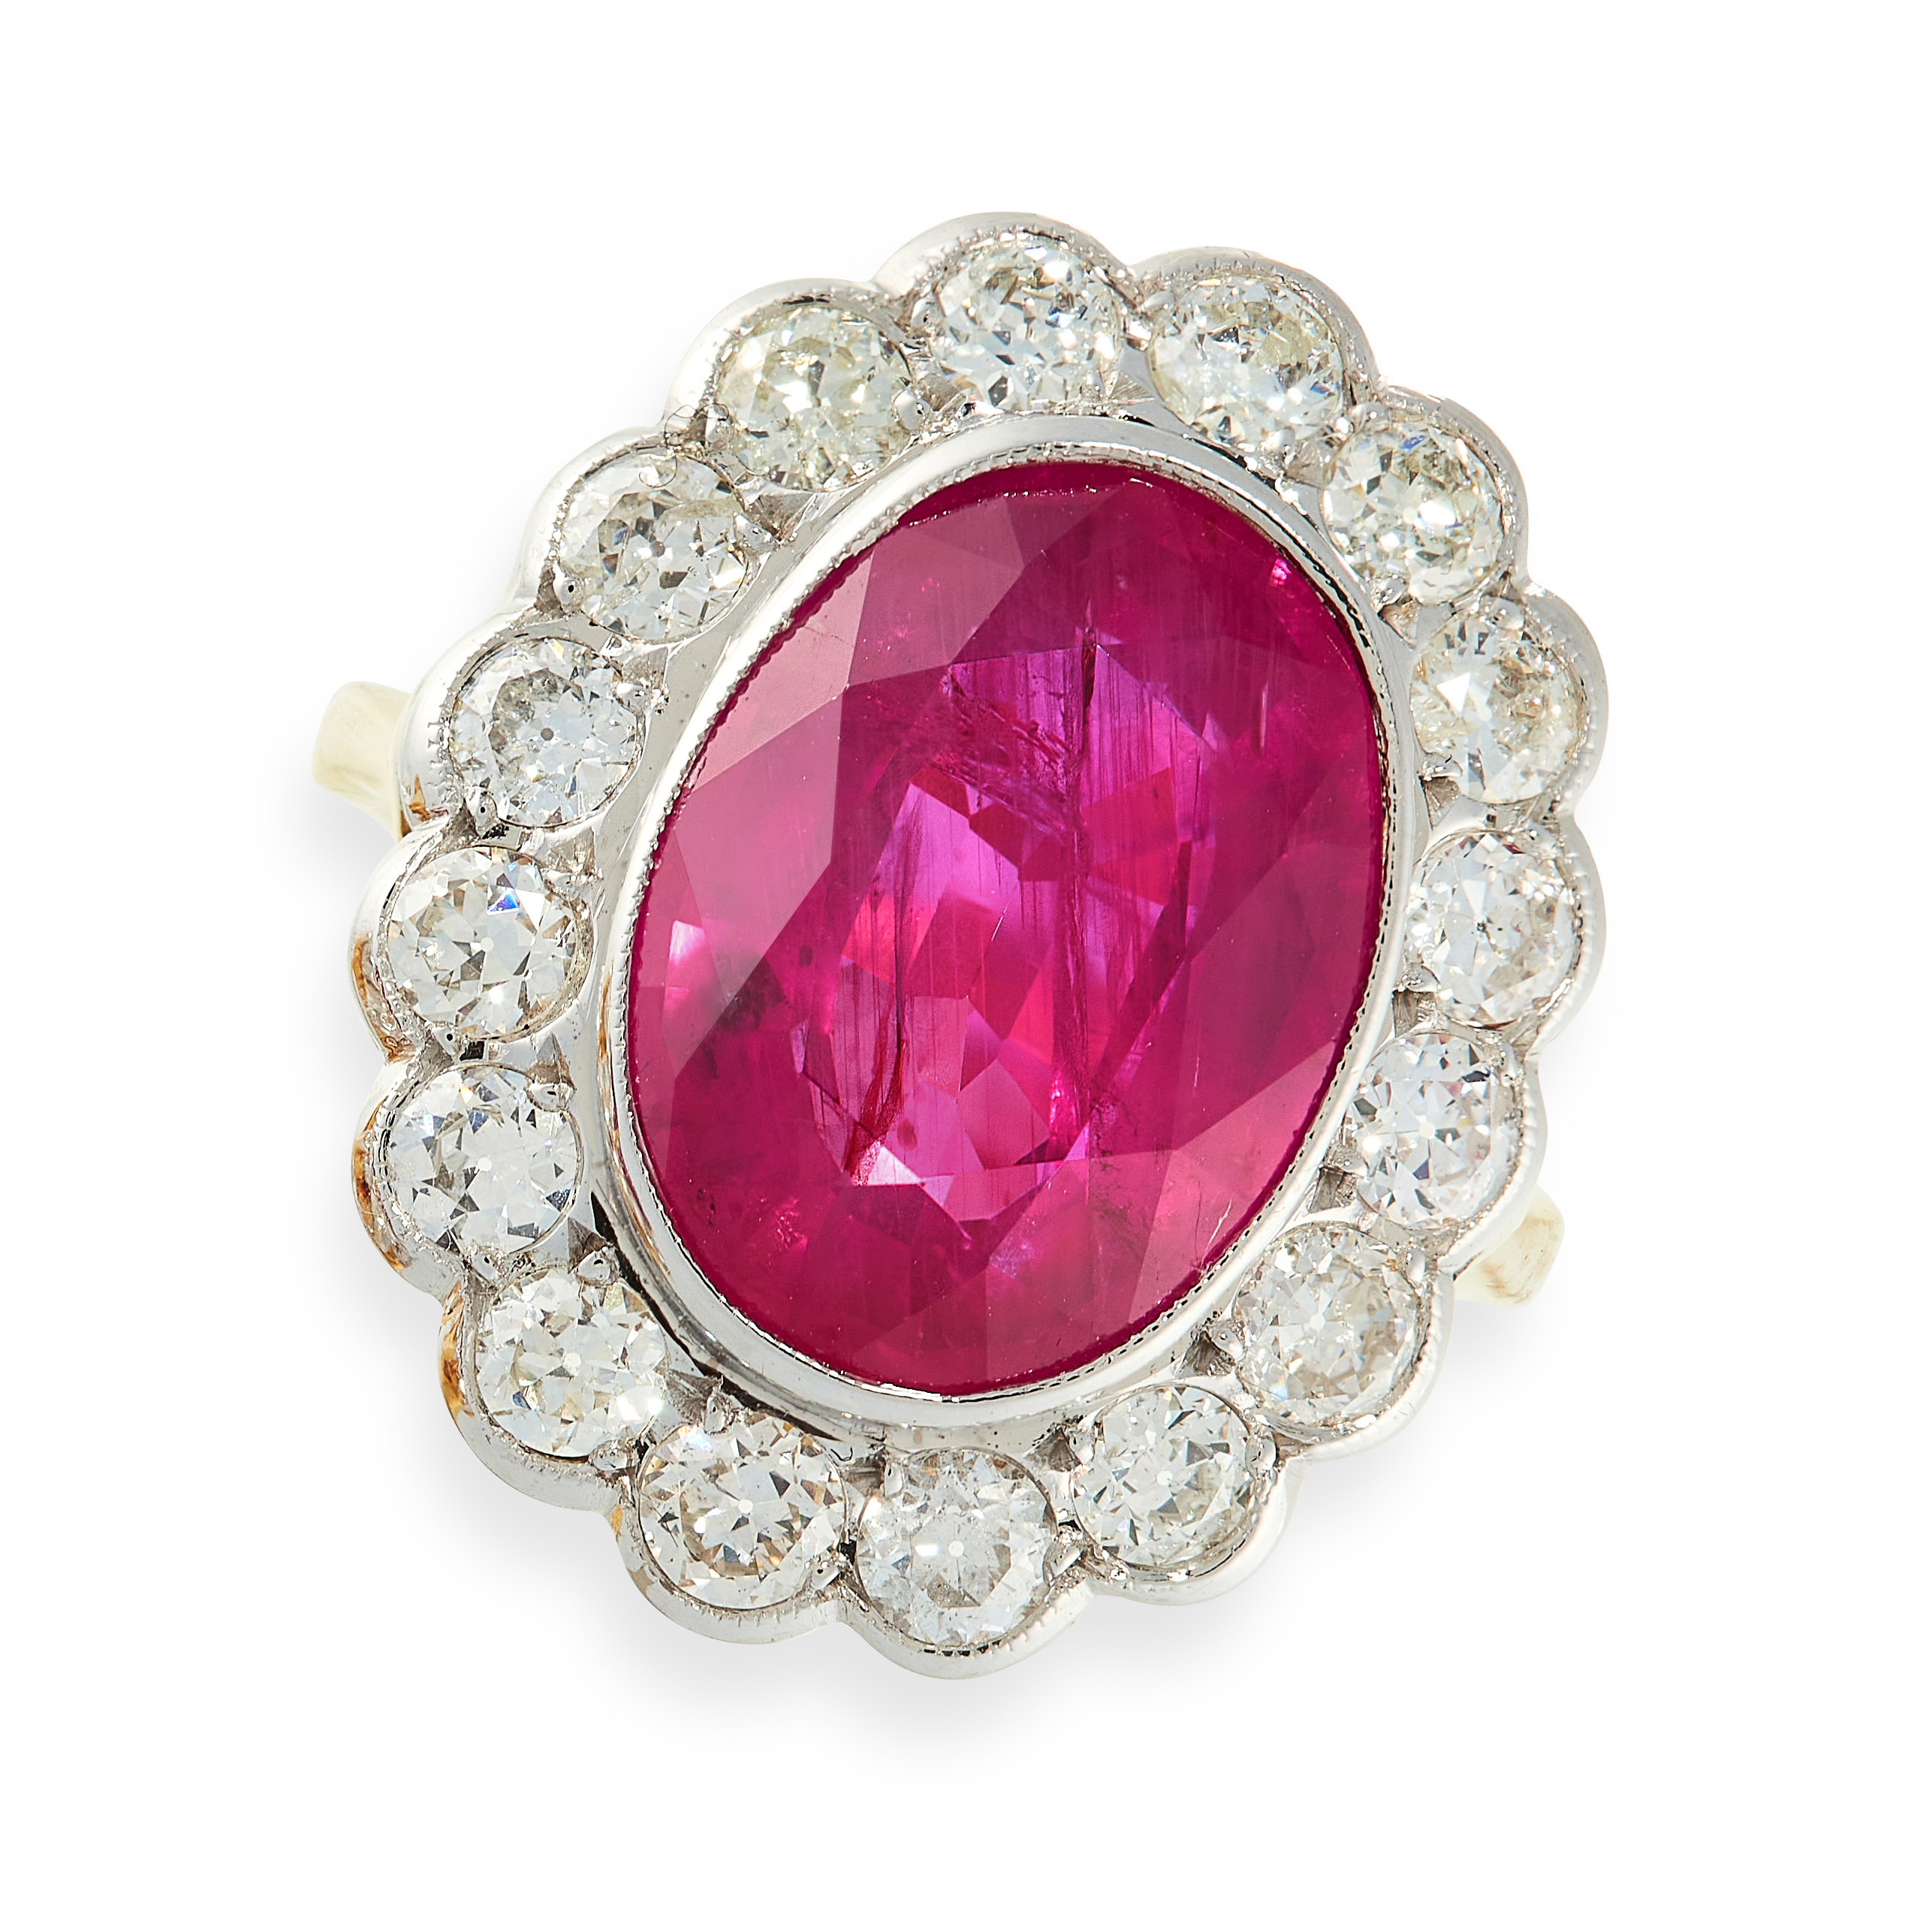 A RUBY AND DIAMOND RING in 18ct yellow gold, set with an oval cut ruby of 6.02 carats, within a